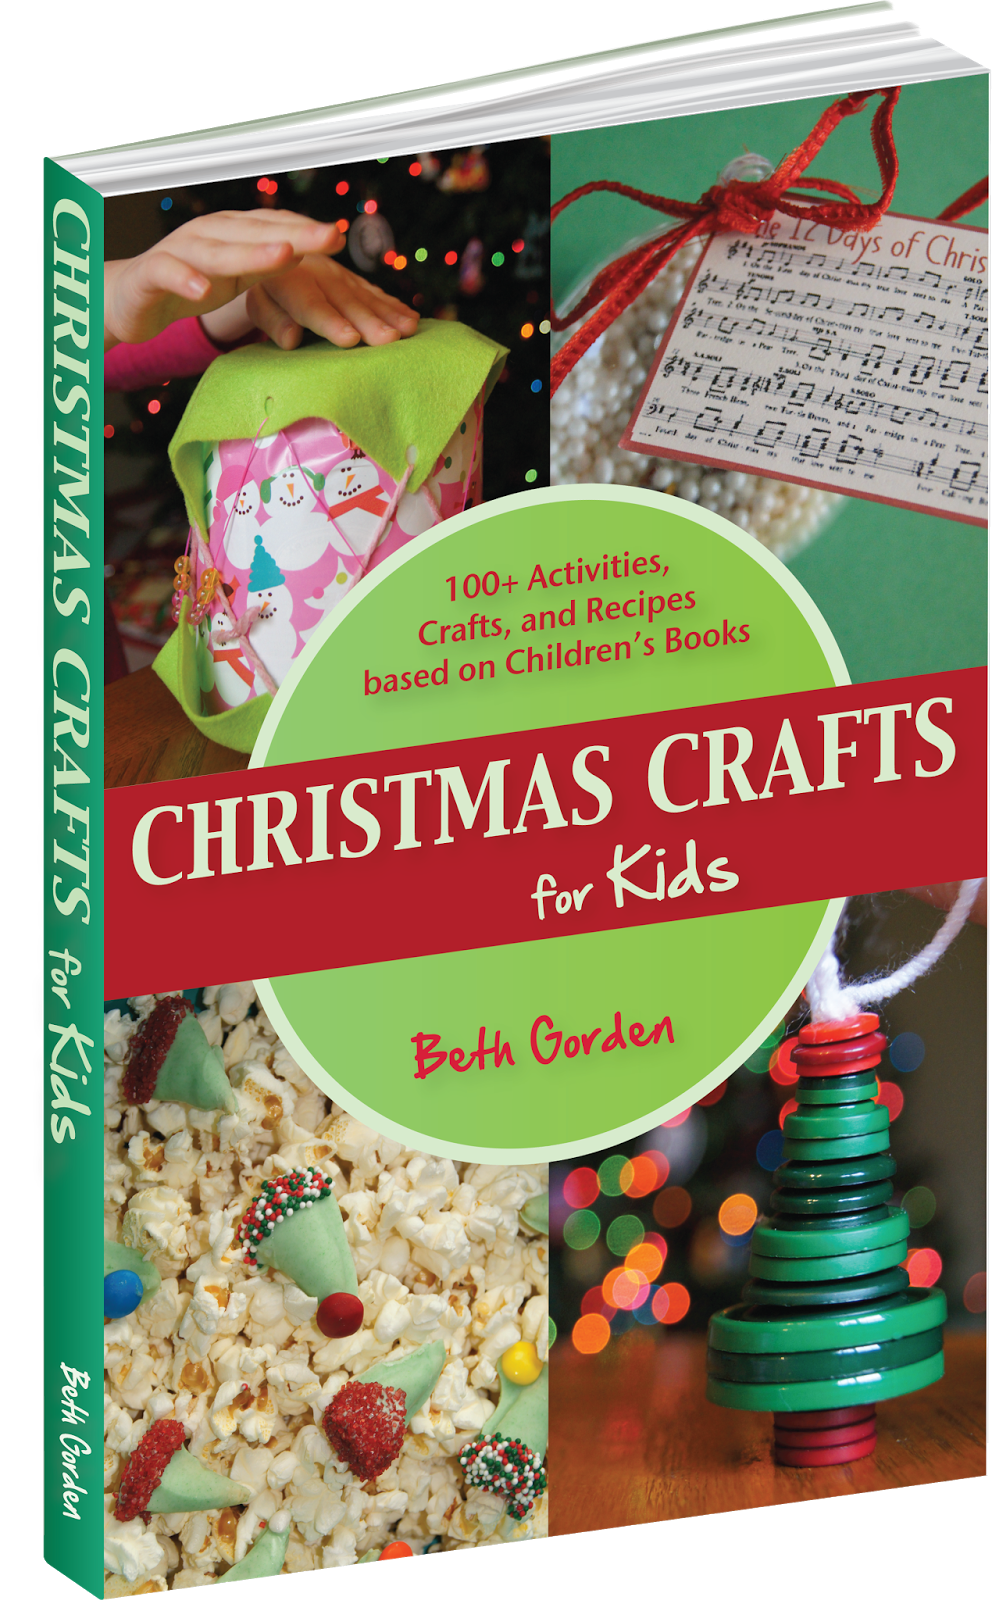 Christmas crafts for kids 100 activities crafts and for Free christmas crafts for kids